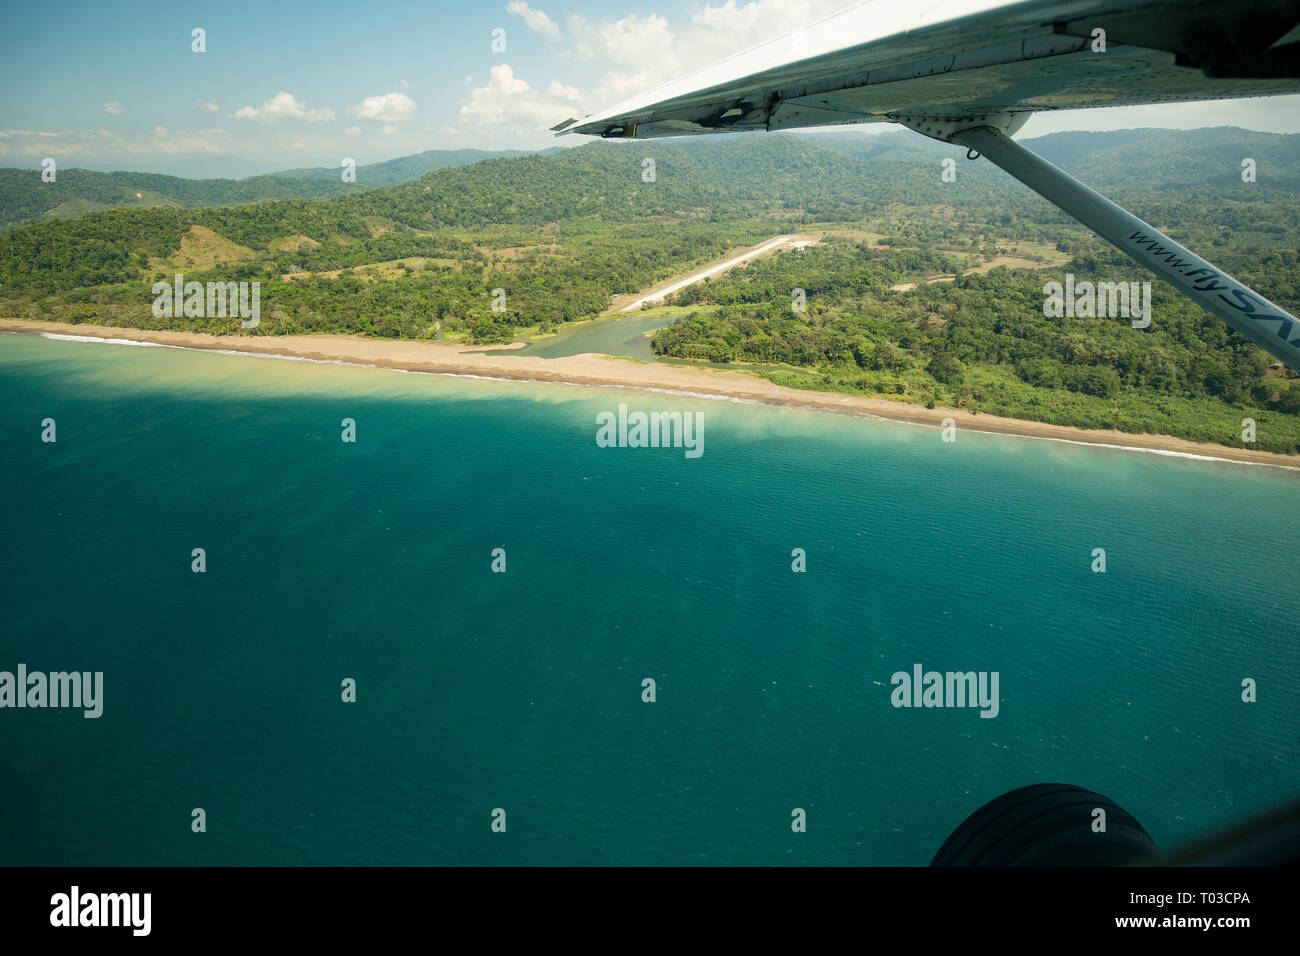 Costa Rica Airport air strip Drake Bay Halbinsel Osa. Stockbild